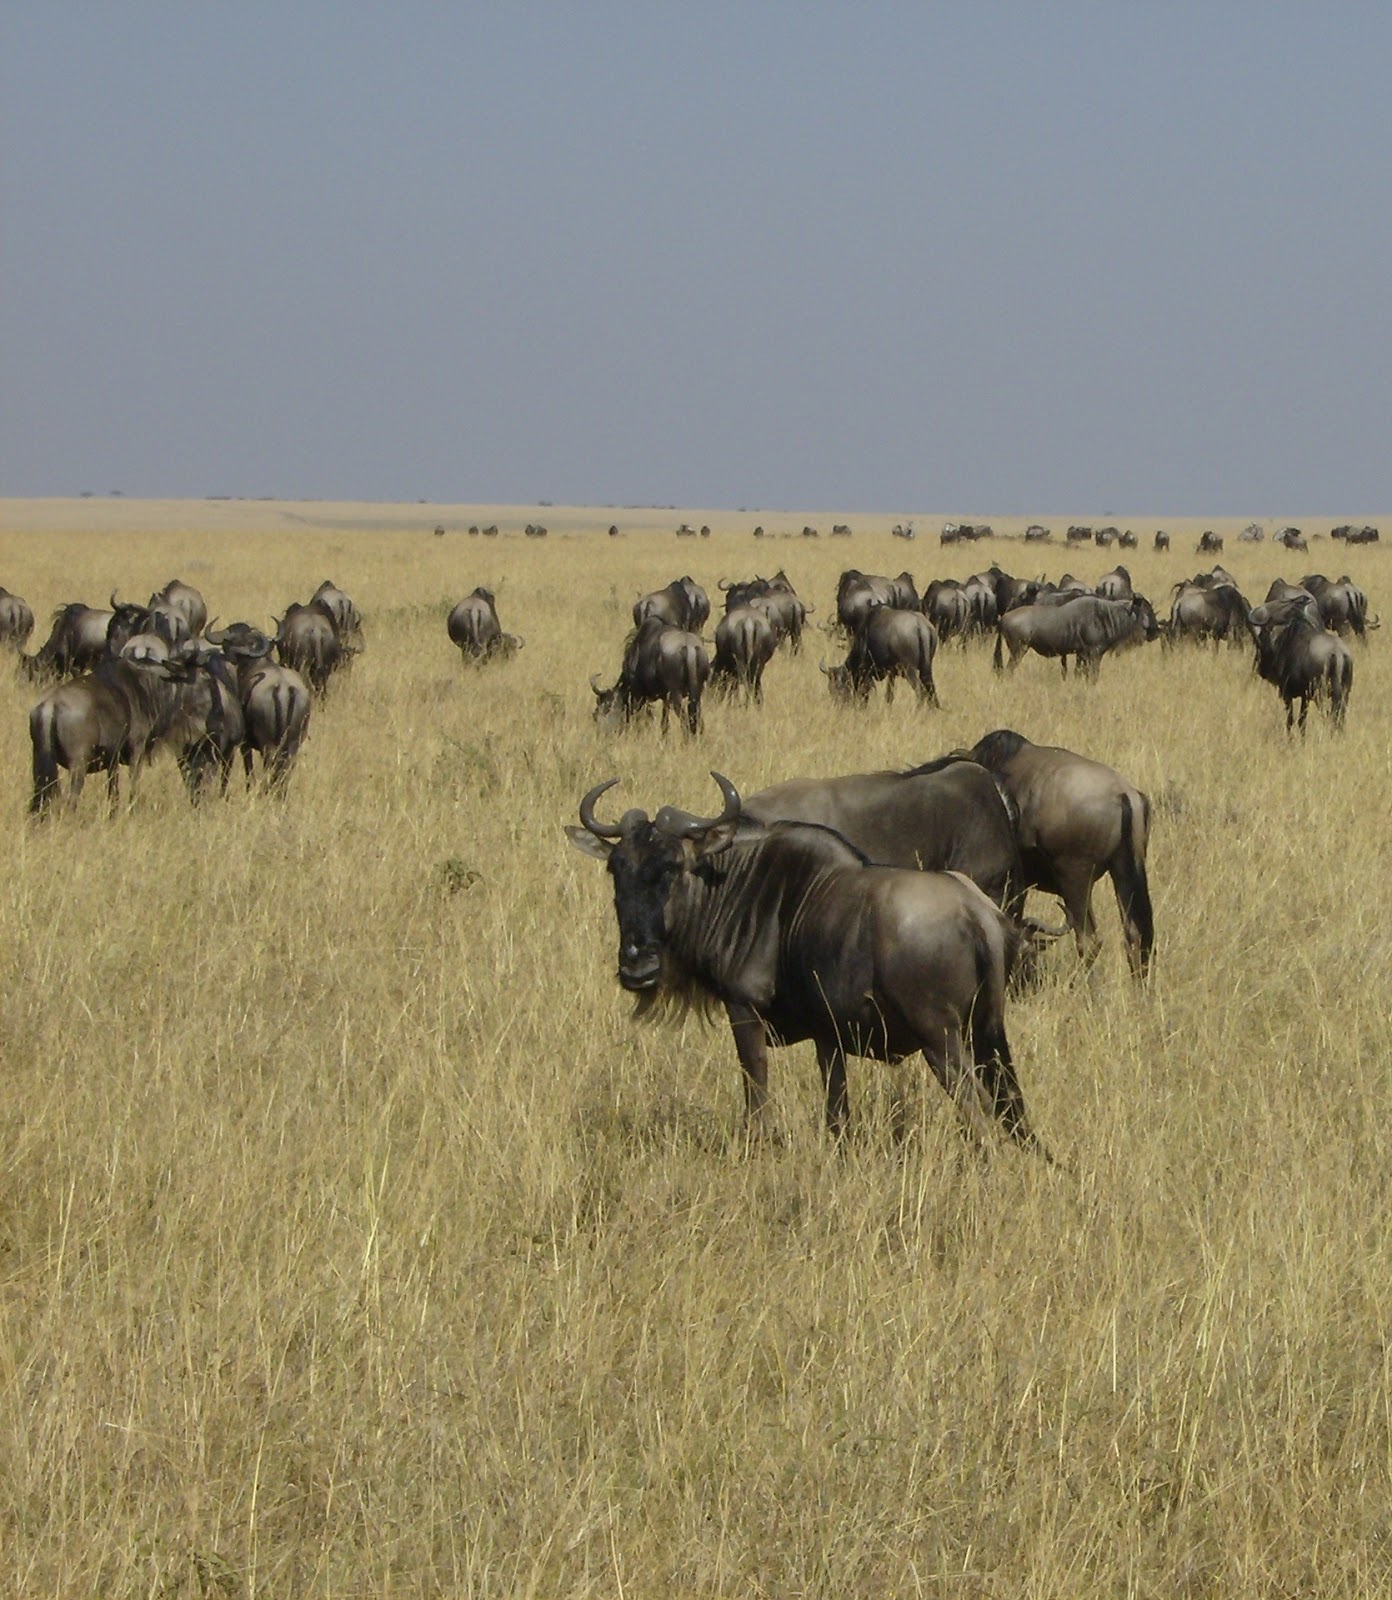 Picture of wildebeests in the savanna grasslands.